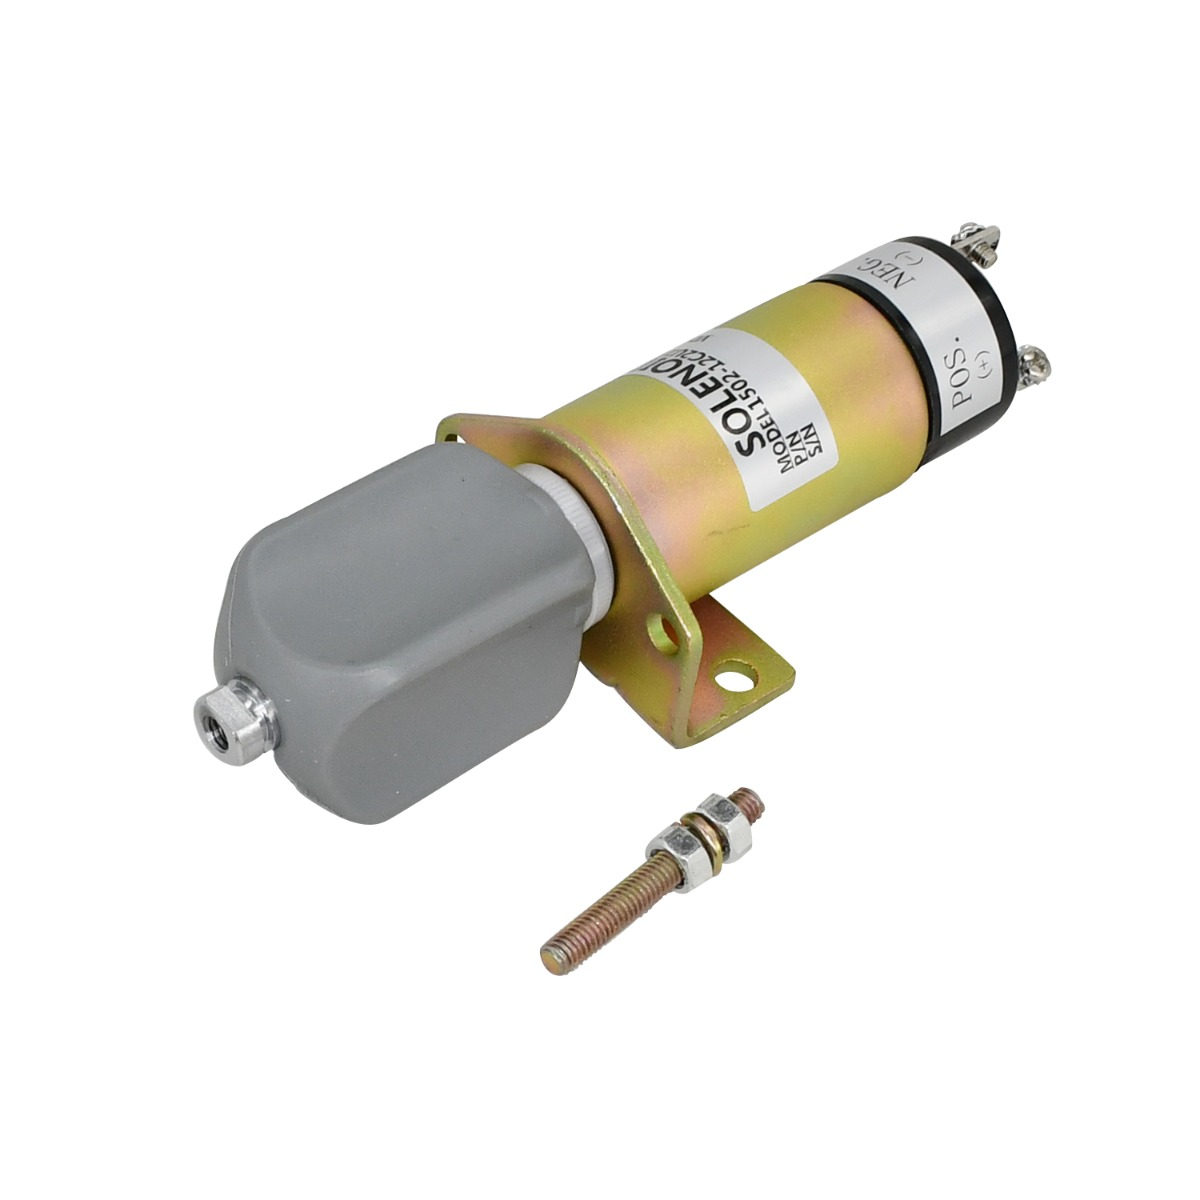 12V Shut Down Solenoid 15003026 Compatible With Skyjack Scissor Lift SJ600 SJ6826RT SJ6832RT SJ7027RT SJ7127RT SJ7135RT SJ800 SJ8243RT SJ8831RT SJ8841RT SJ8850RT